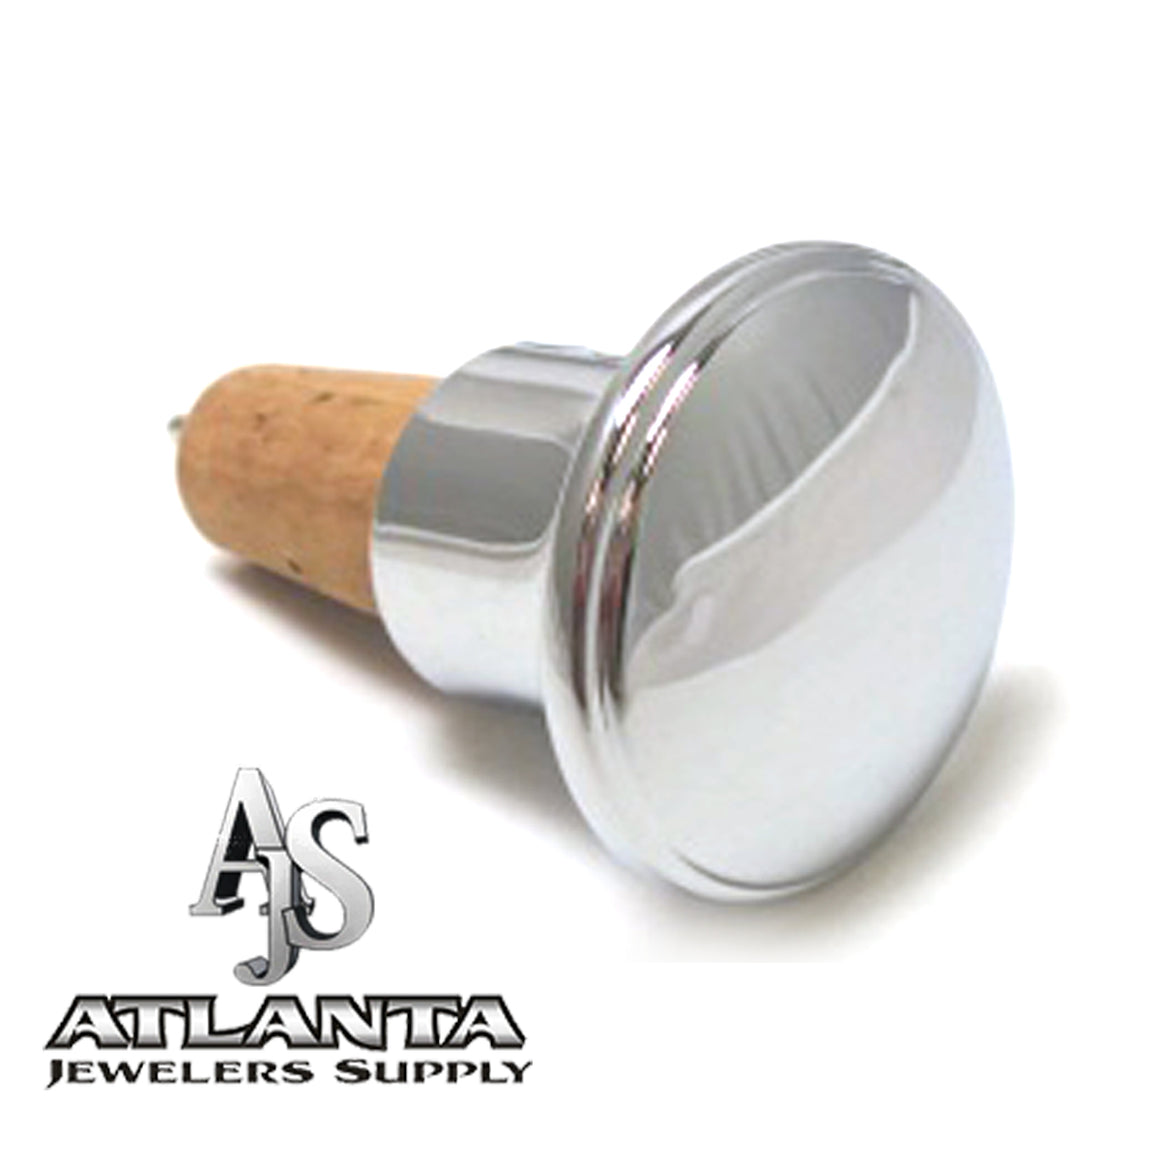 Engravable Round Bottle Stopper with Cork Bottom atlanta-jewelers-supply.myshopify.com